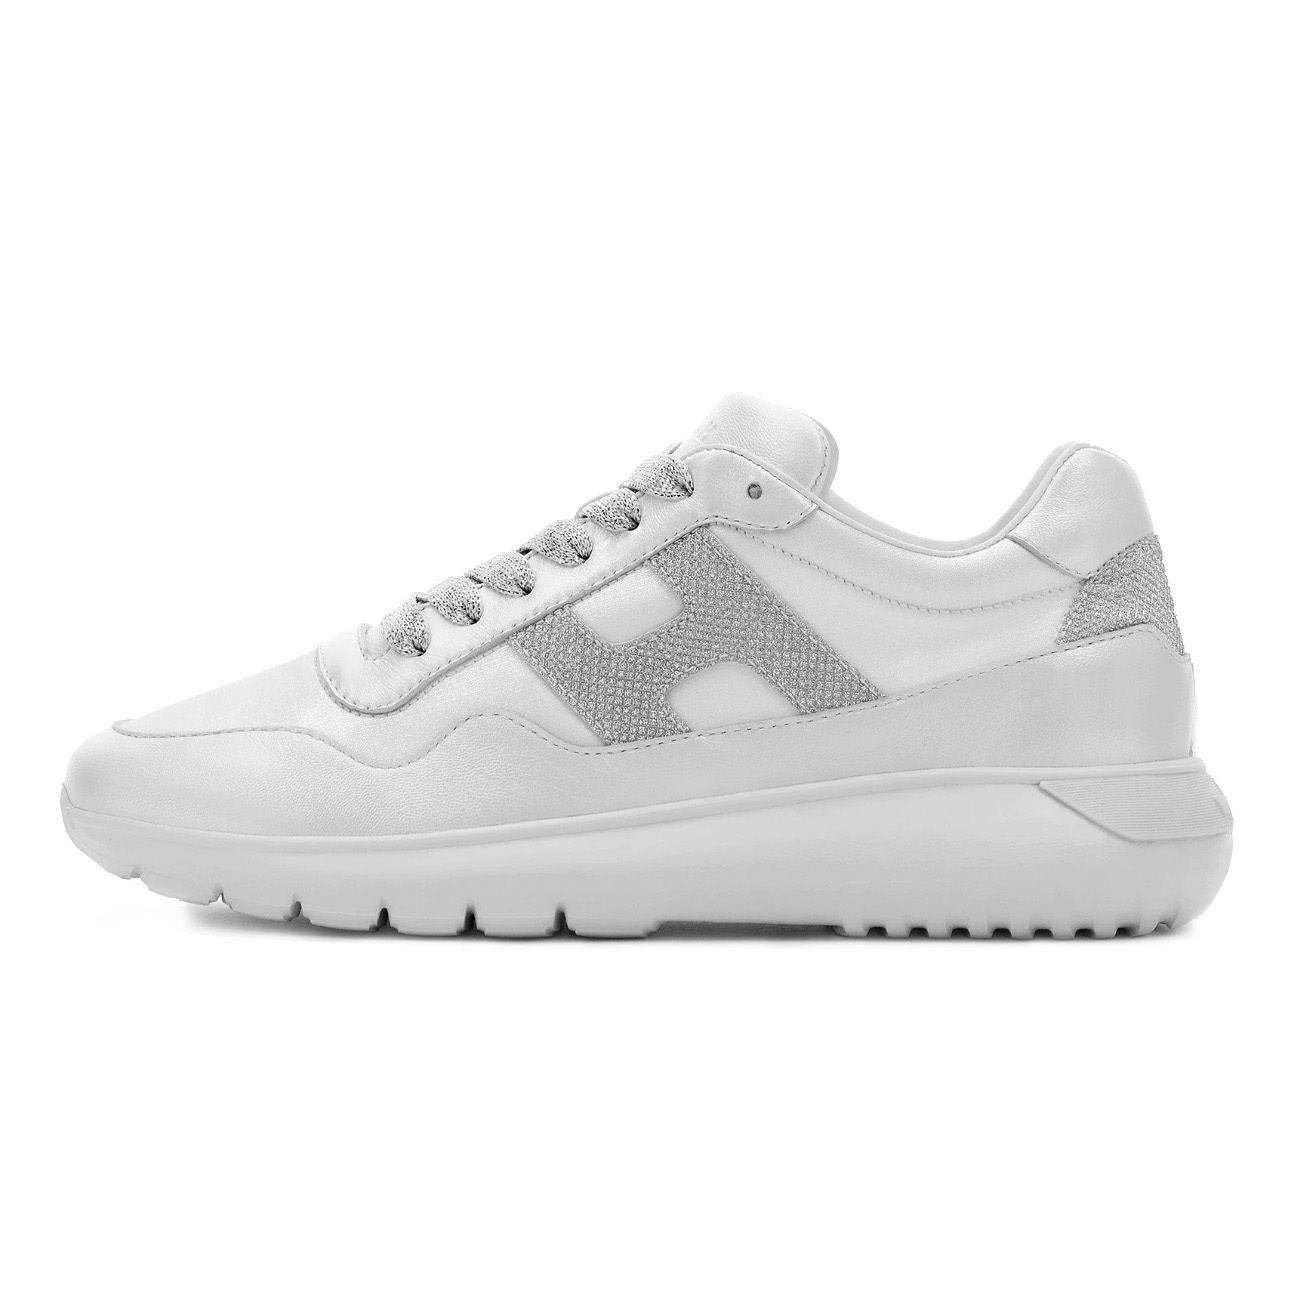 SNEAKERS INTERACTIVE 3 Donna Bianco Argento 2000646994129